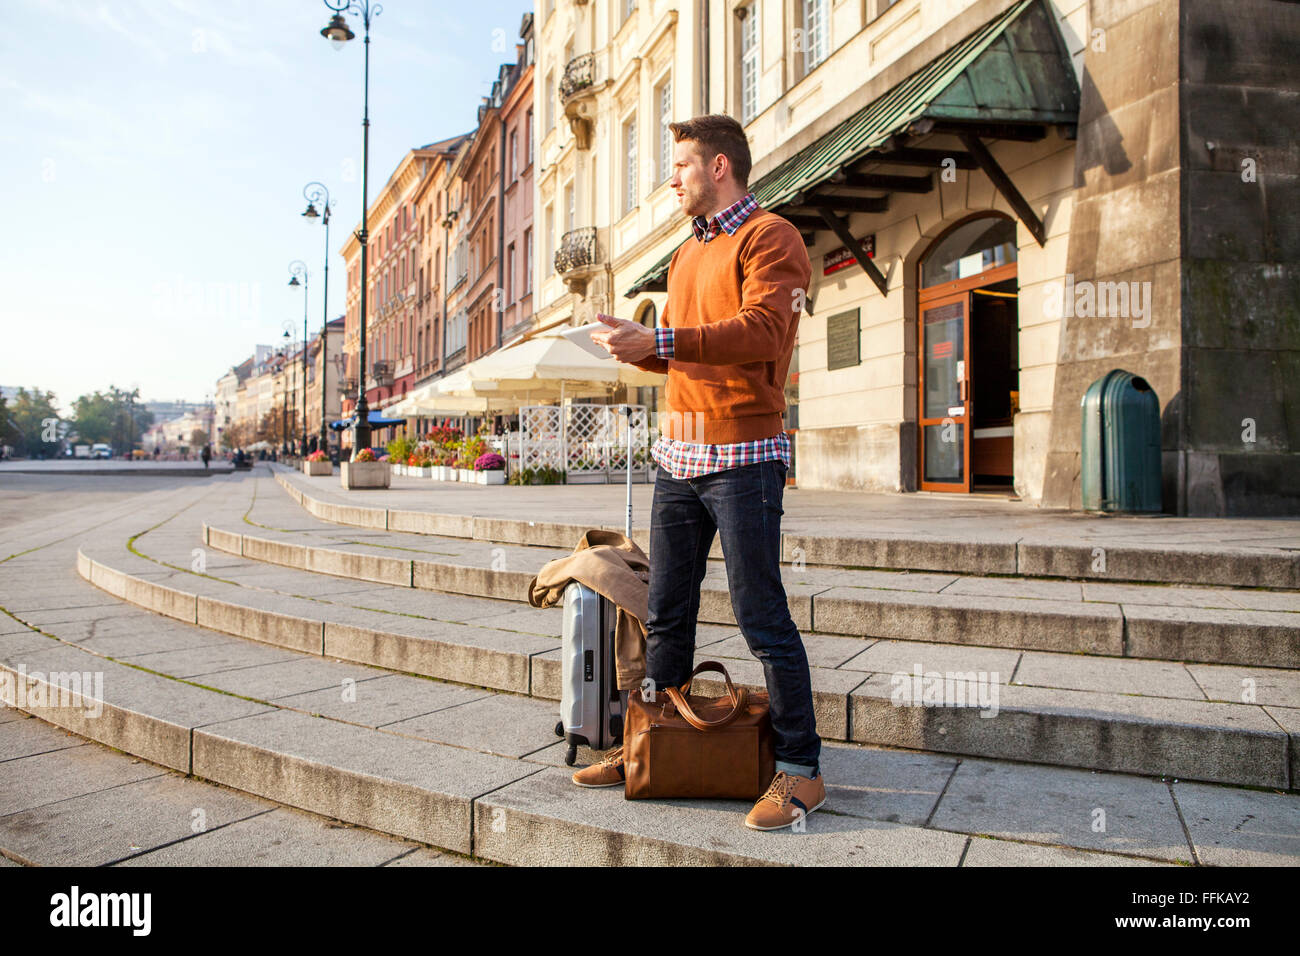 Man on a city break using digital tablet - Stock Image